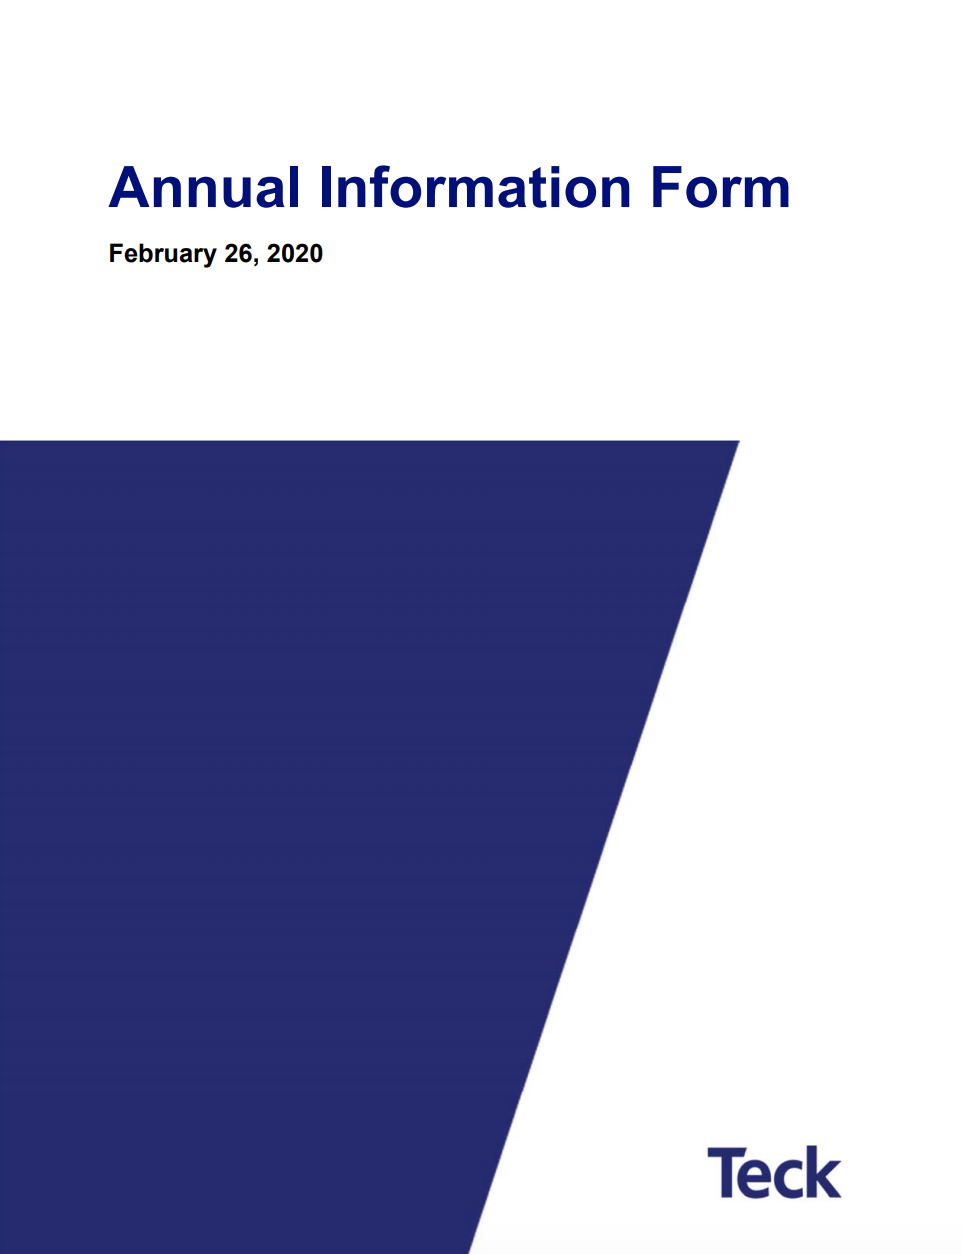 2019 Annual Information Form